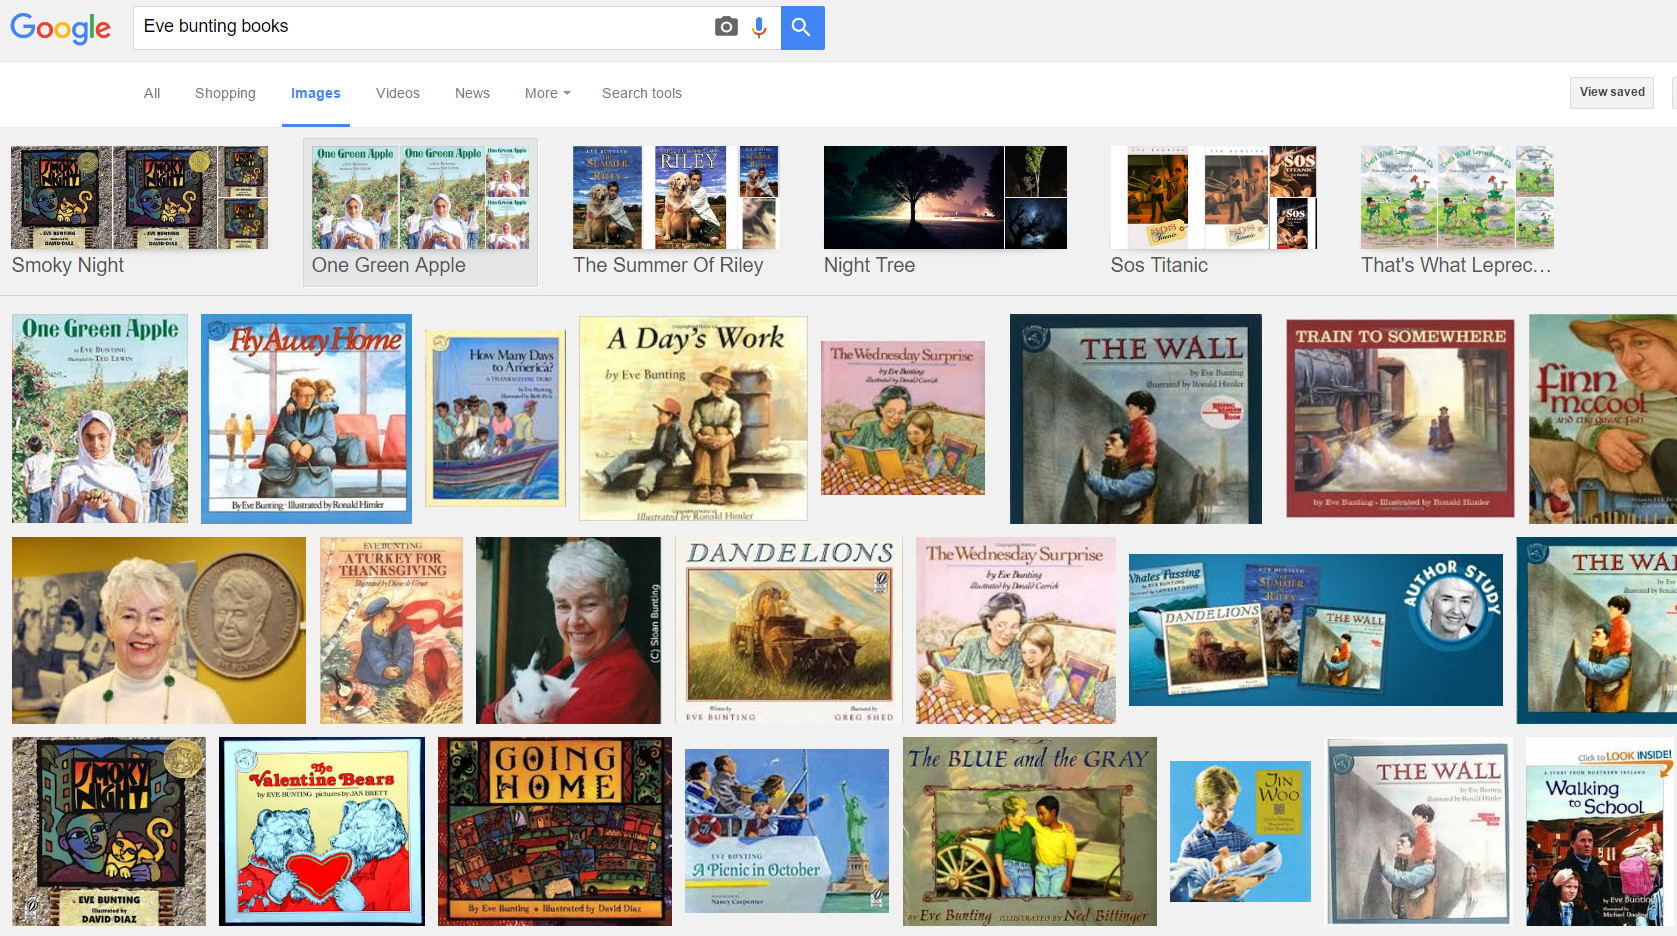 A simple google image search for any author will give you a good indication of the types of books to consider using for your author study.